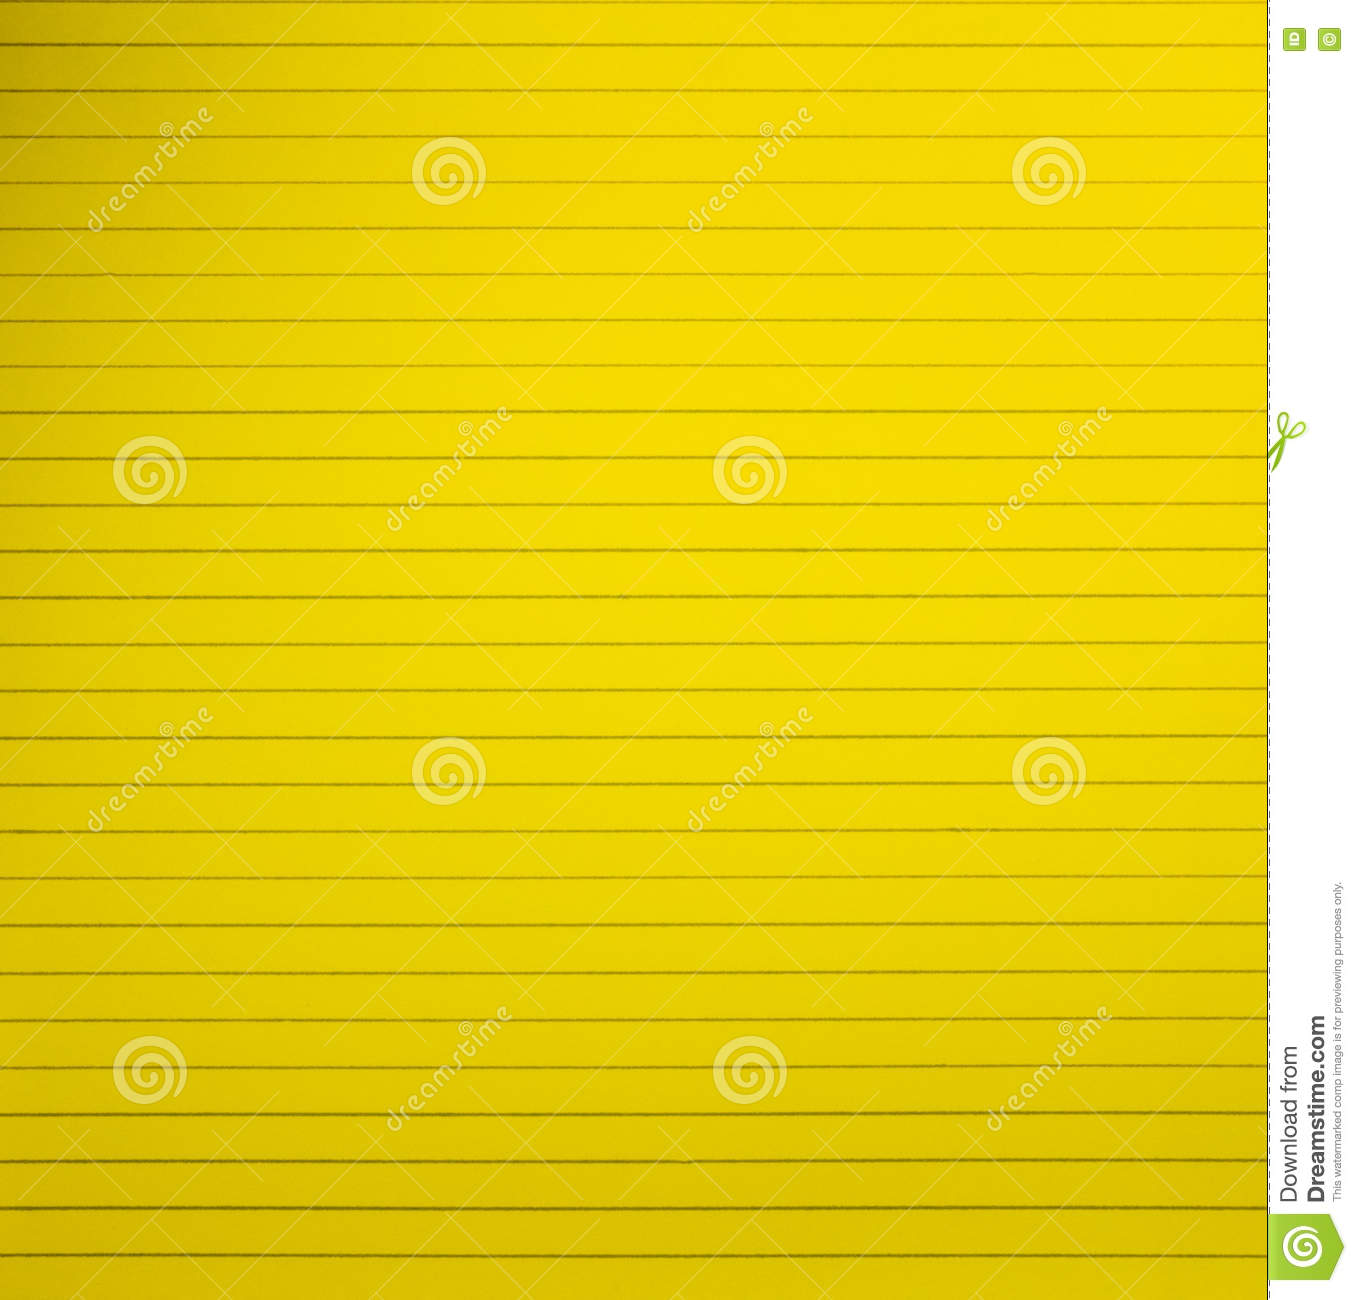 Yellow Blank Lined Notebook Paper Page Stock Photo Image Of Note